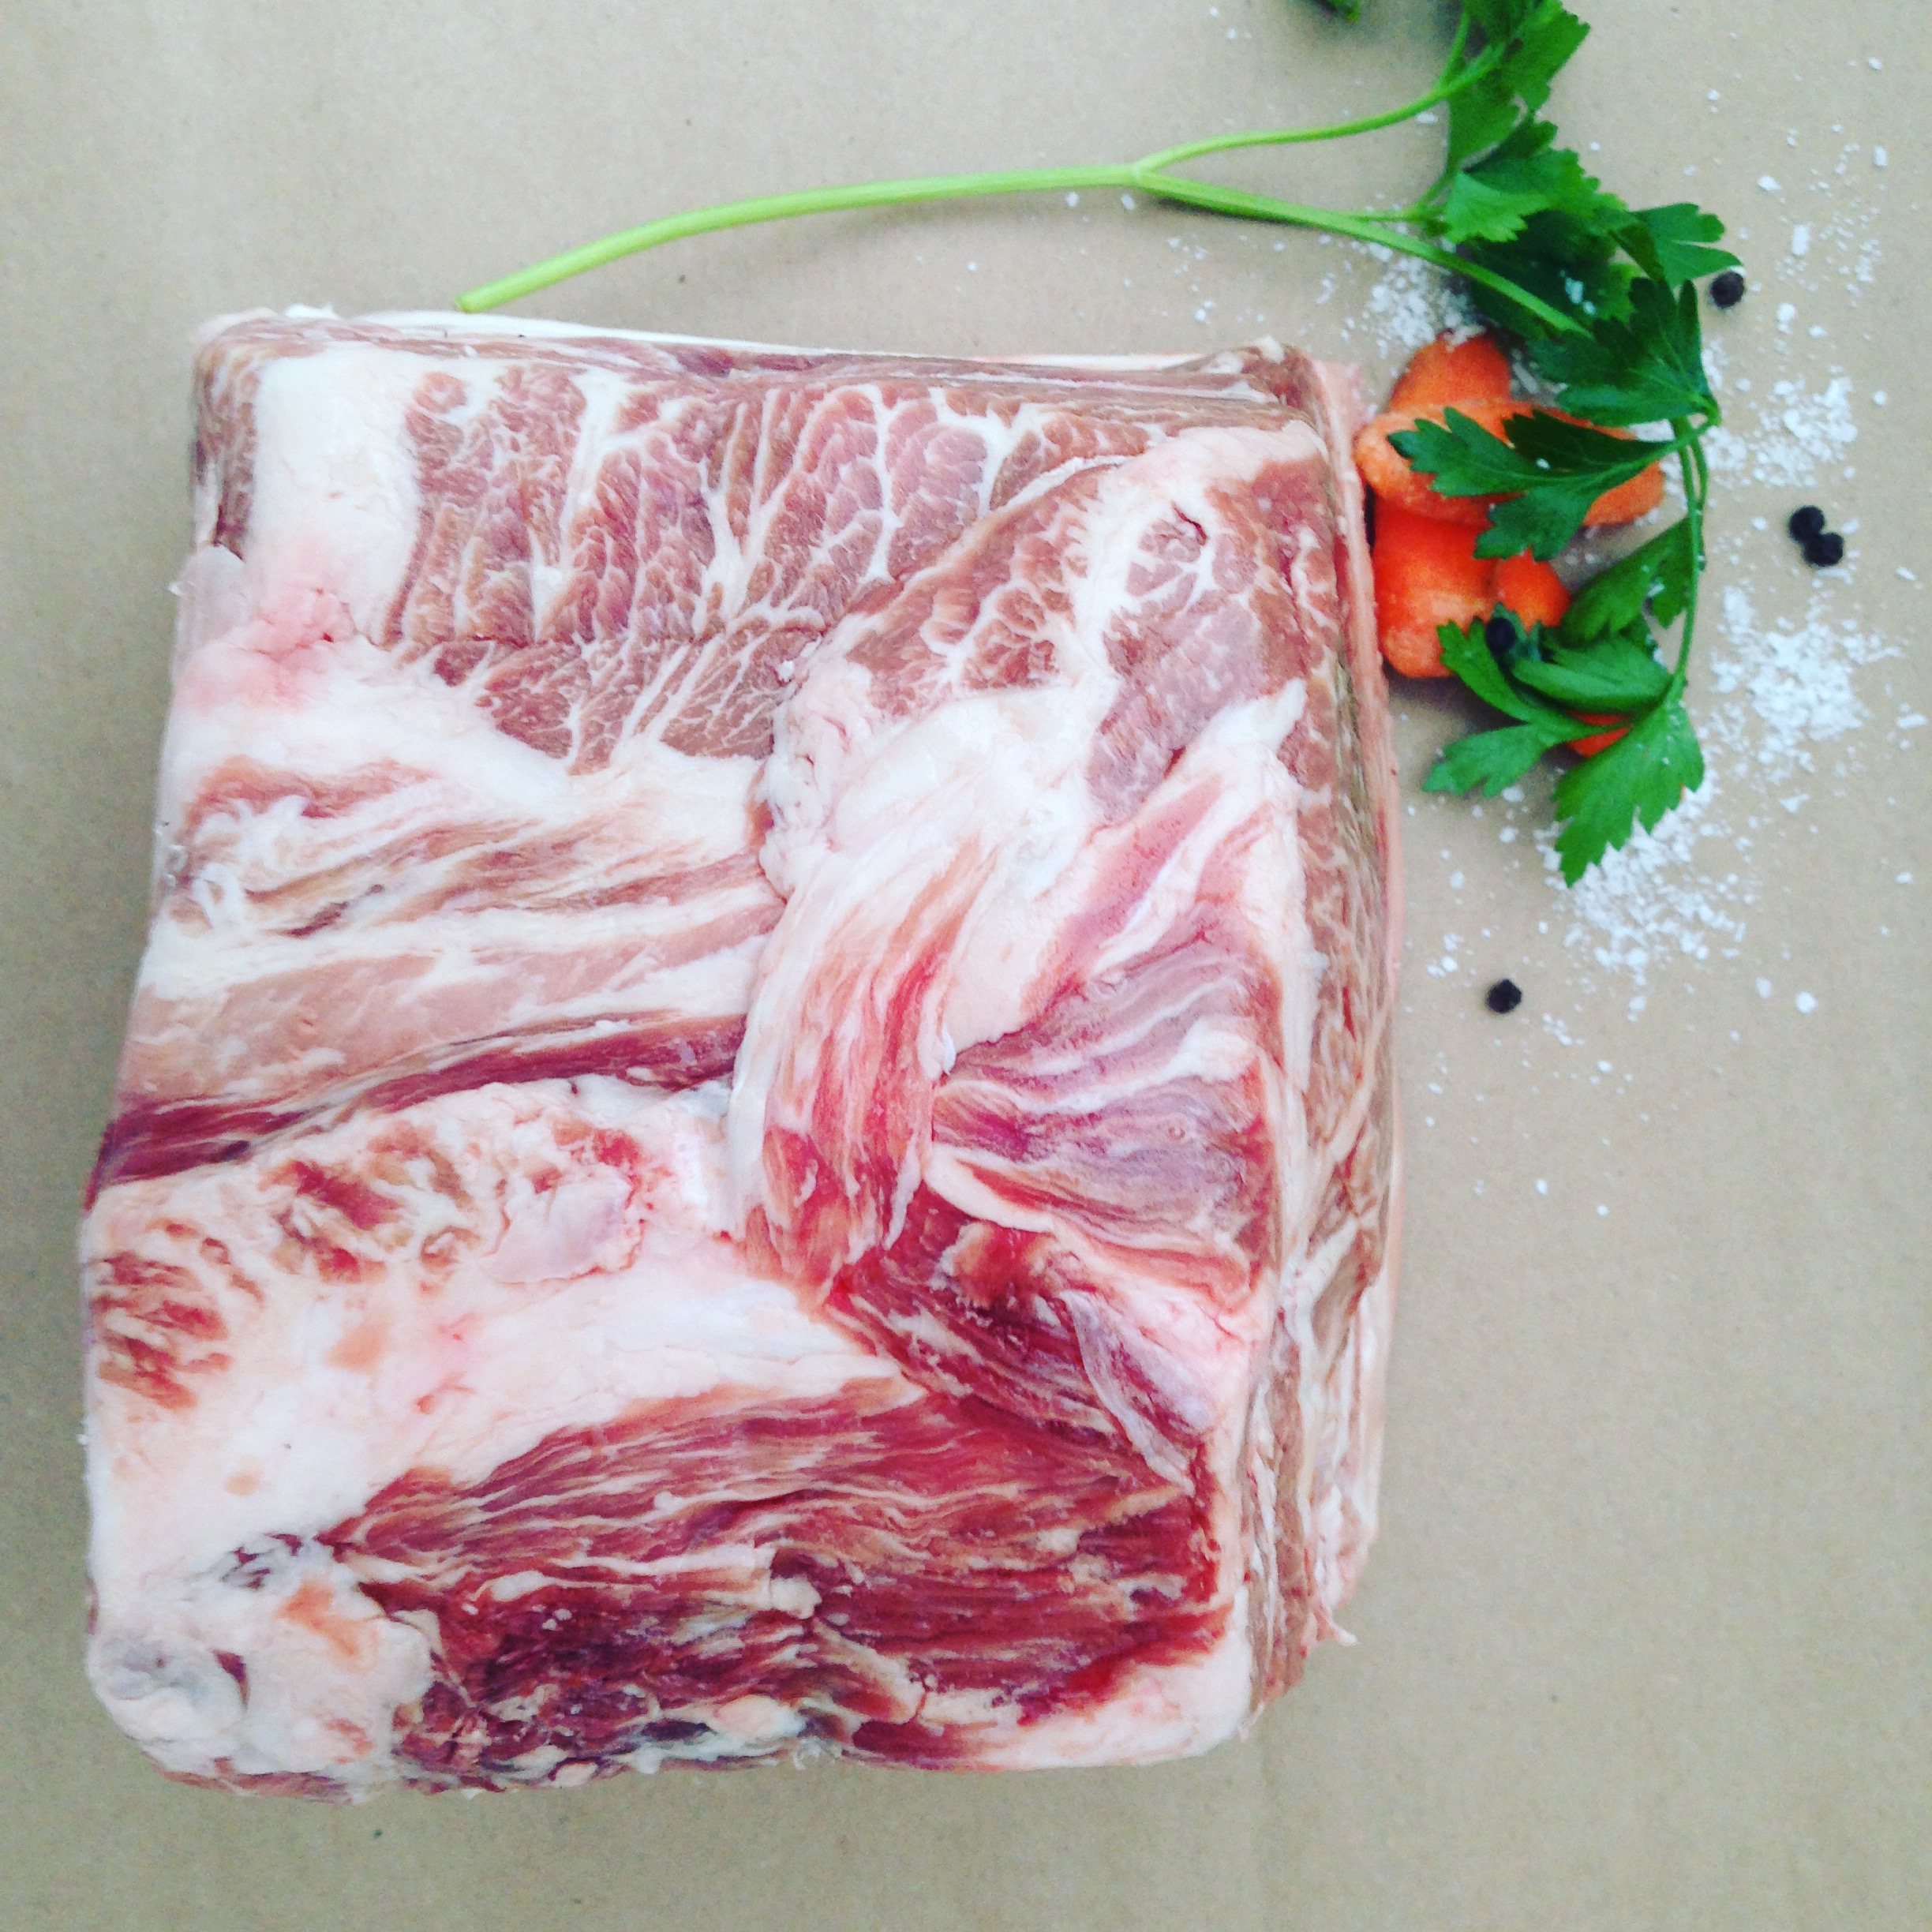 Vintage Tennessee Duroc - The highest standard of quality, for both it's red coloring and degree of marbling.